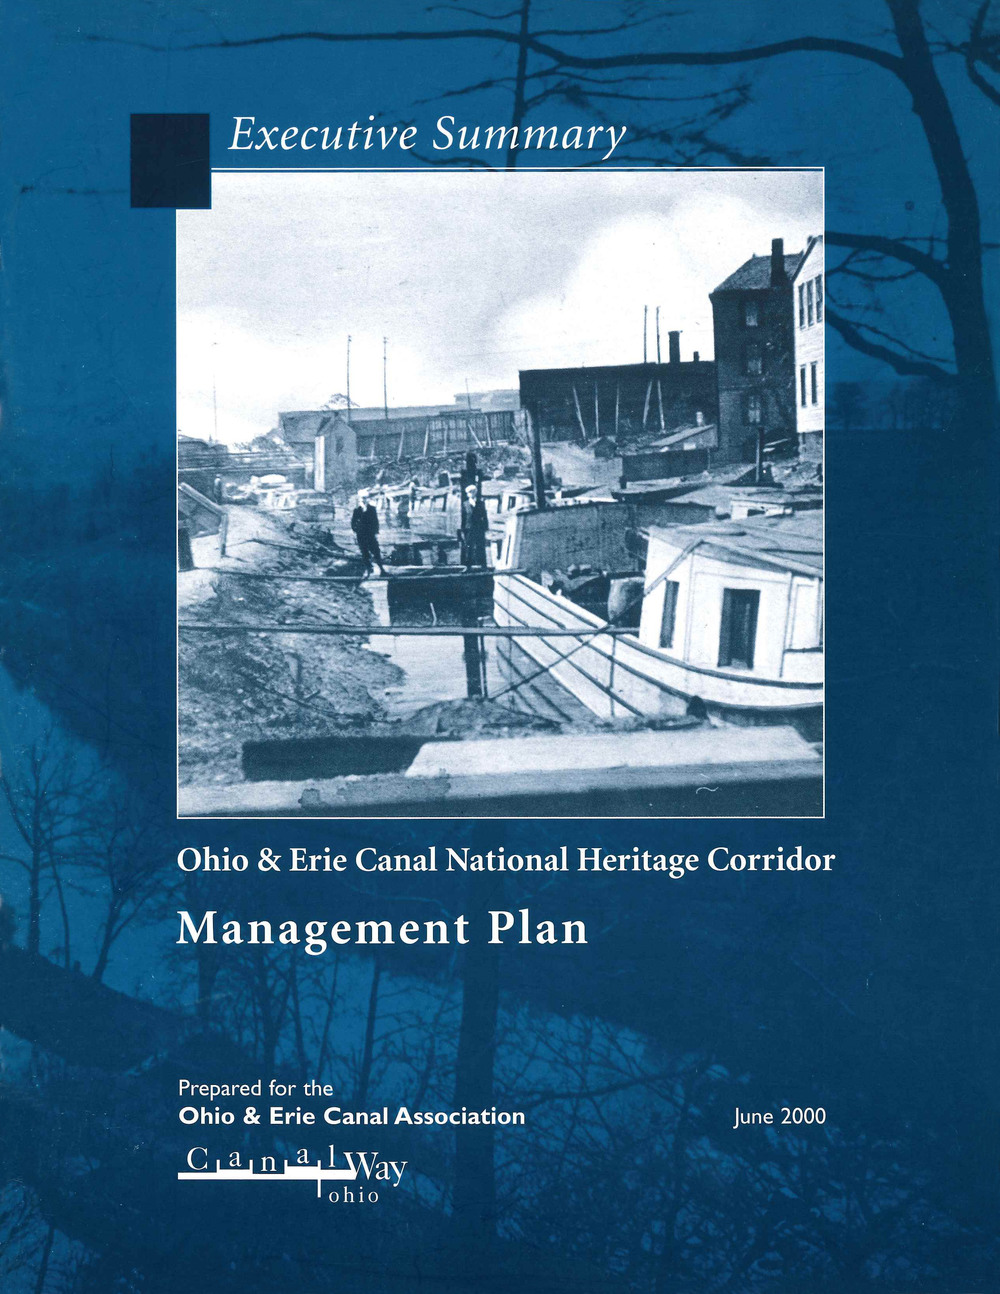 Ohio & Erie Canal National Heritage Corridor Management Plan, June 2000